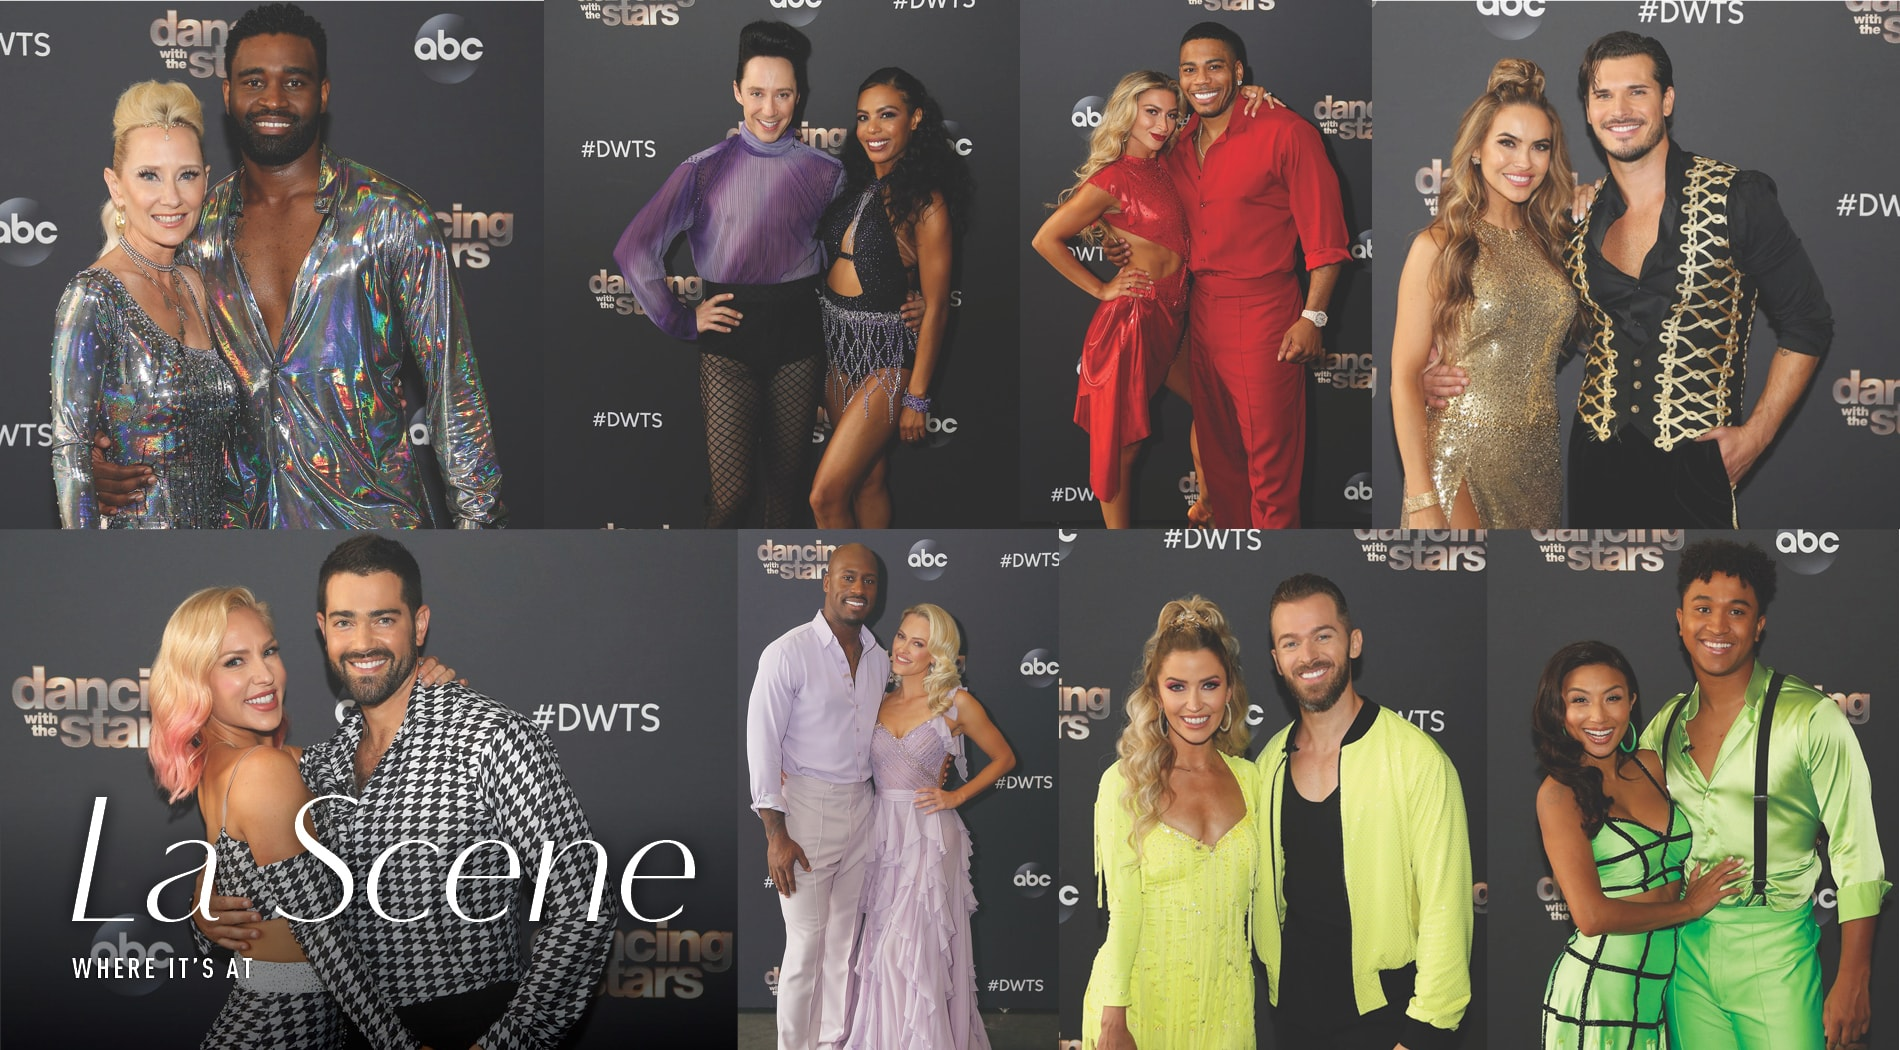 ABC, Dancing with the Stars